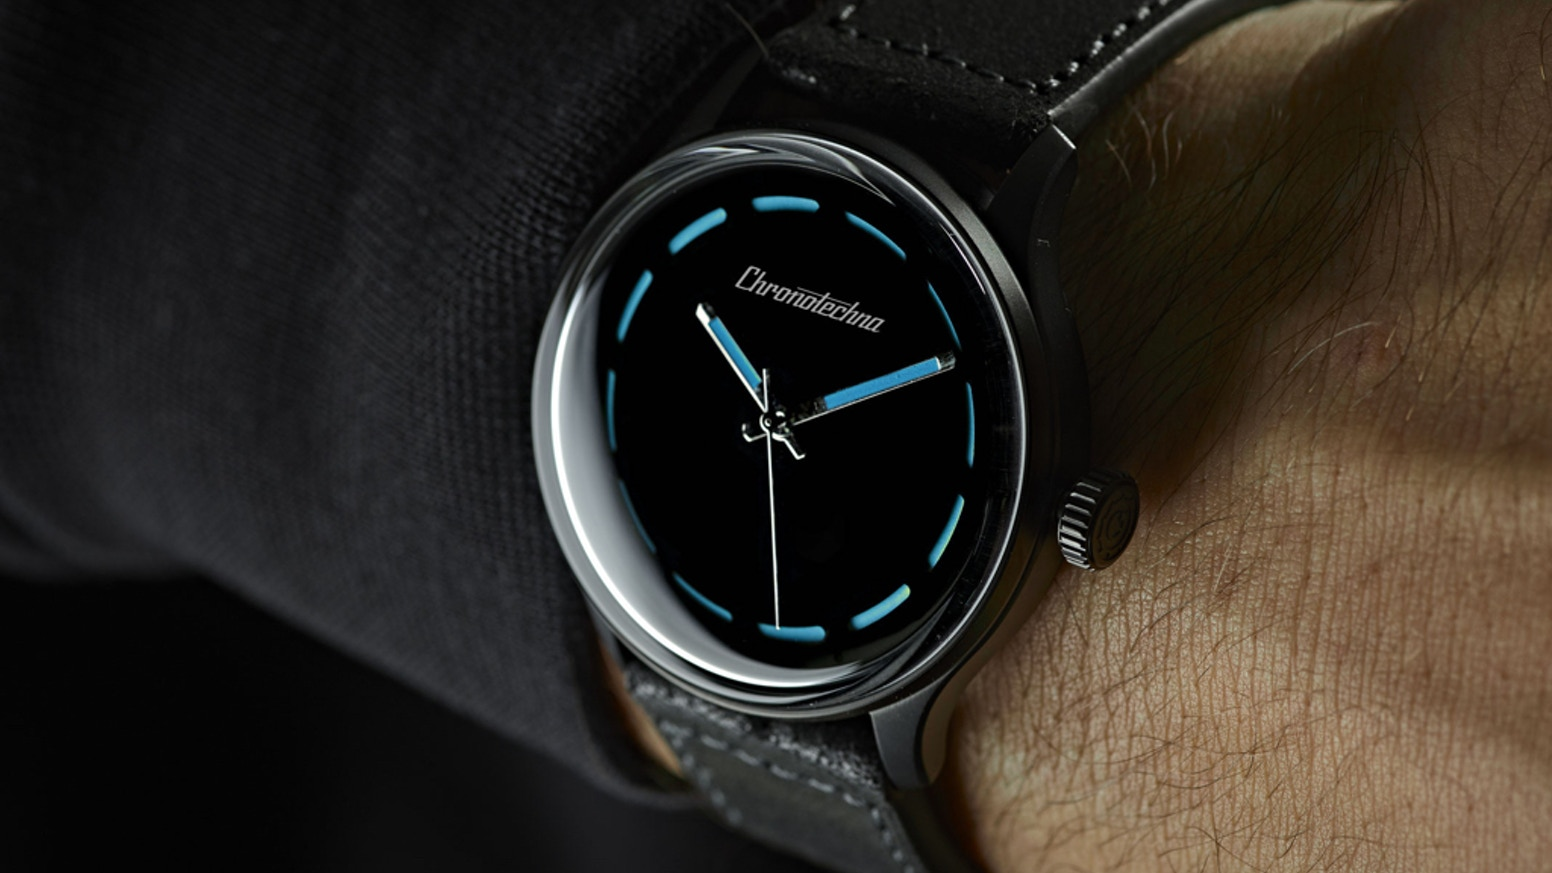 Limited Edition Swiss Made Self-Winding Watch using Aerospace Super Black Coating - Luxury meets Science!